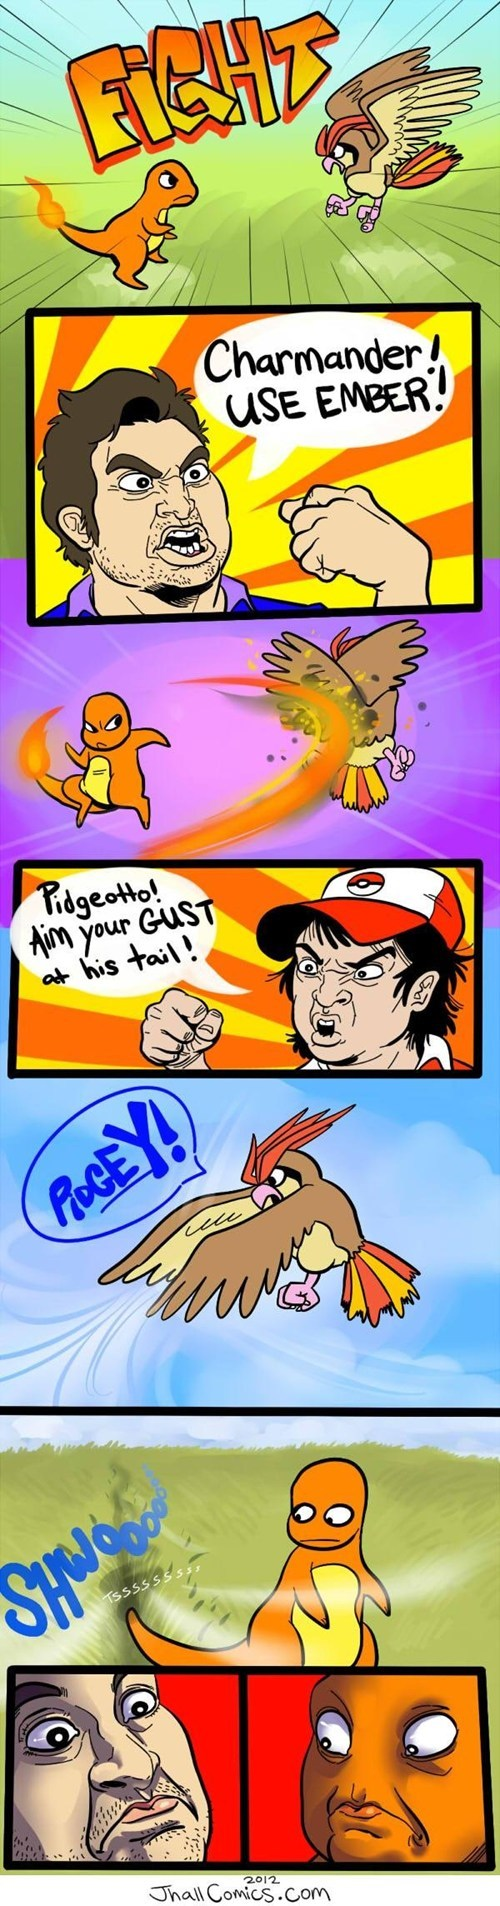 Battle charmander comic pidgey - 6819065856